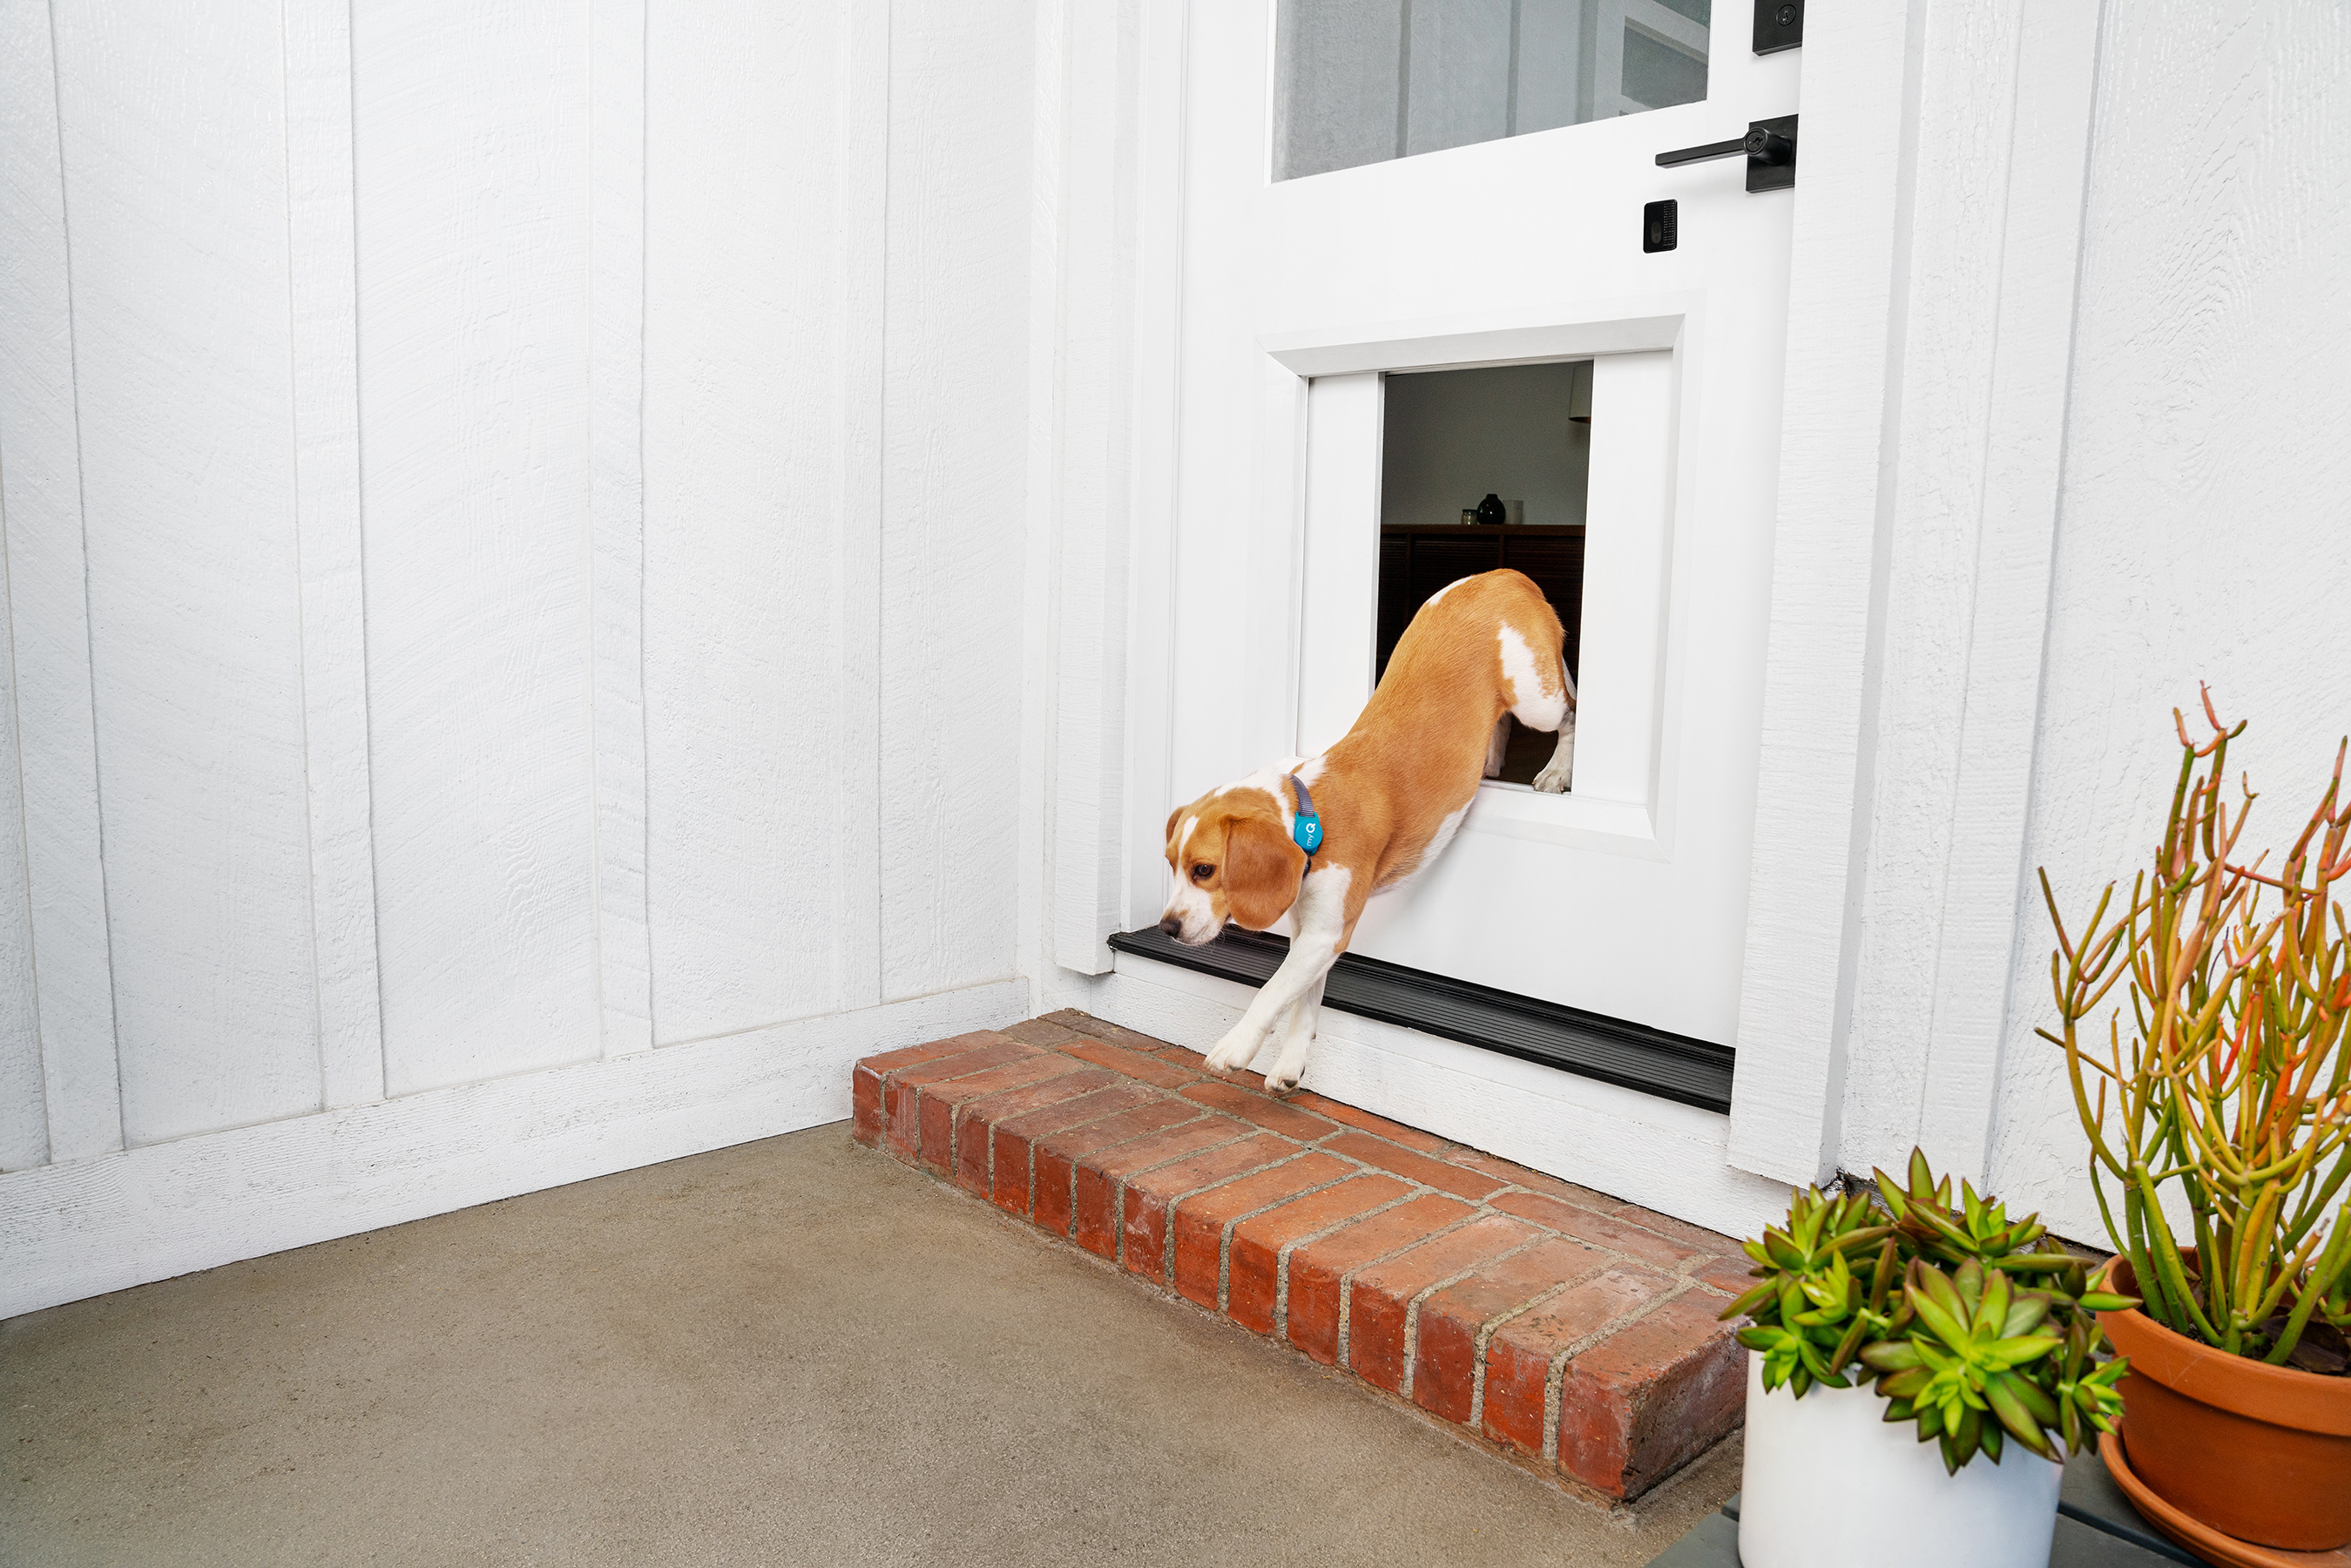 Safely let your pet out to potty and play when you're not home.